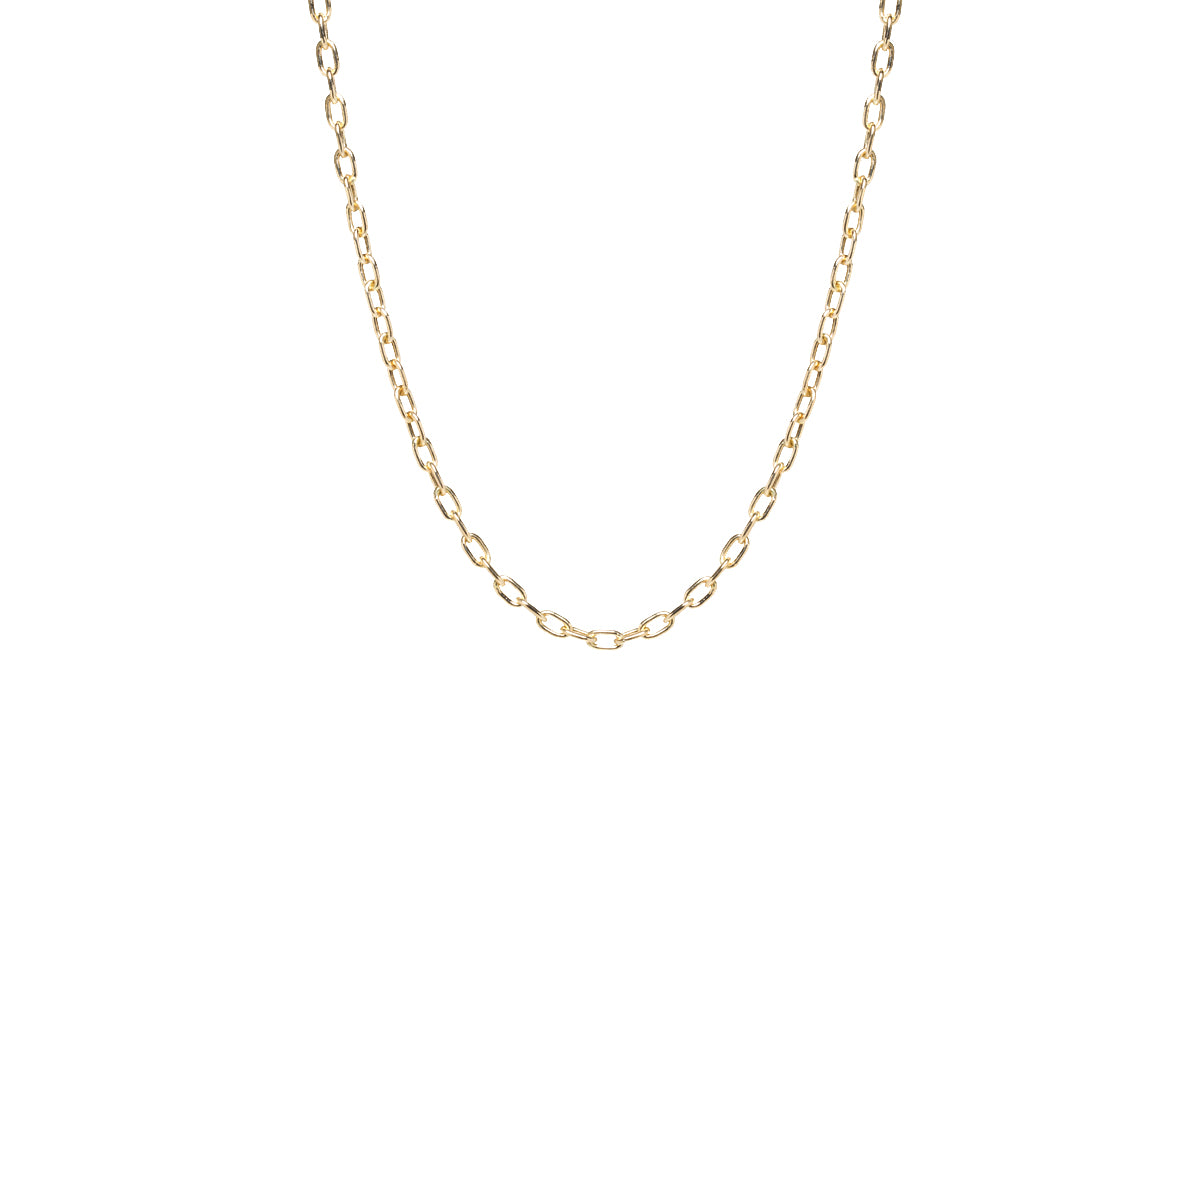 14k gold small square oval link chain